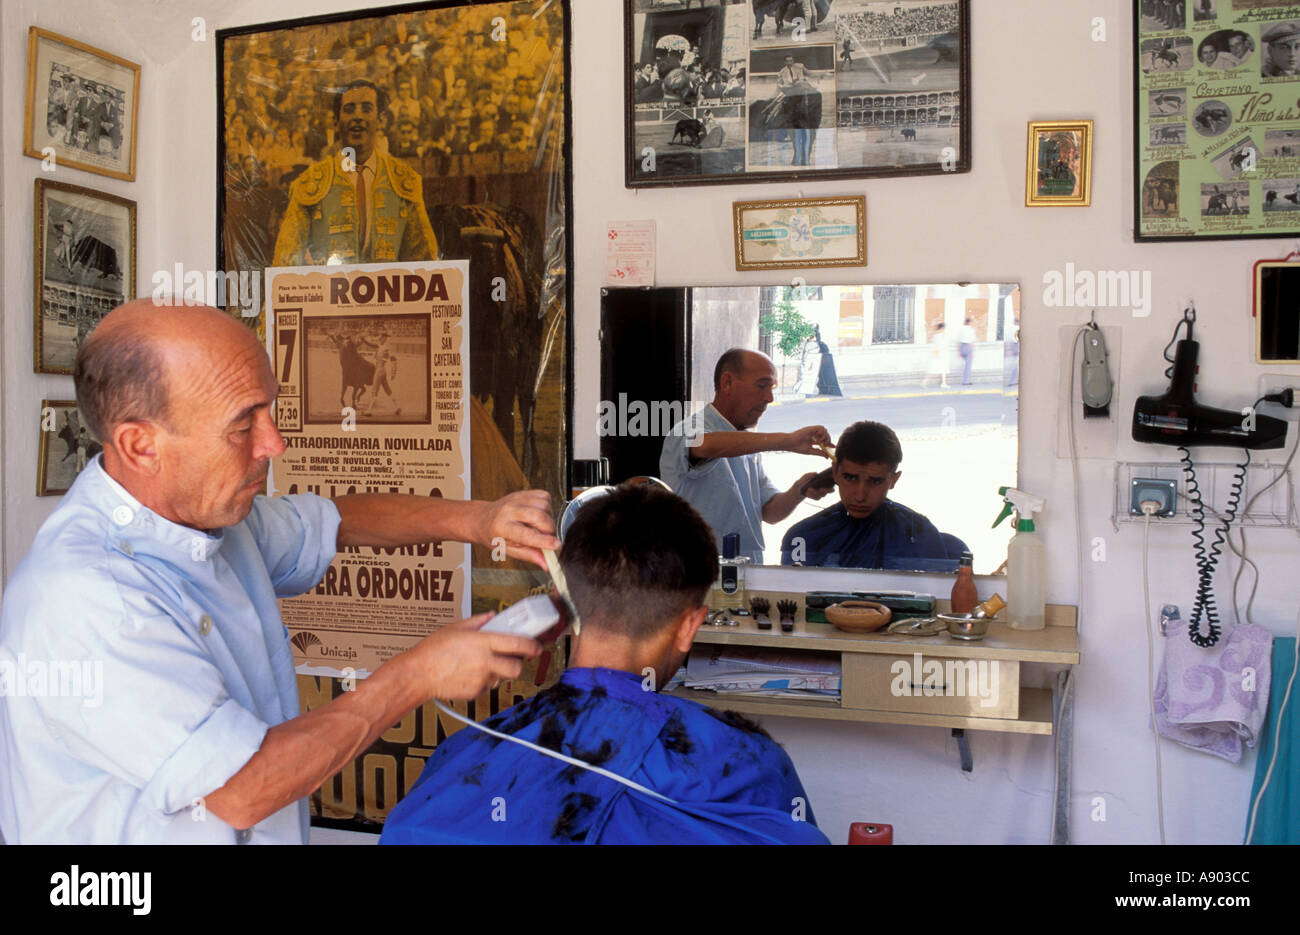 Barbers with bullfight posters Ronda Malaga Province Andalucia Andalusia Spain - Stock Image